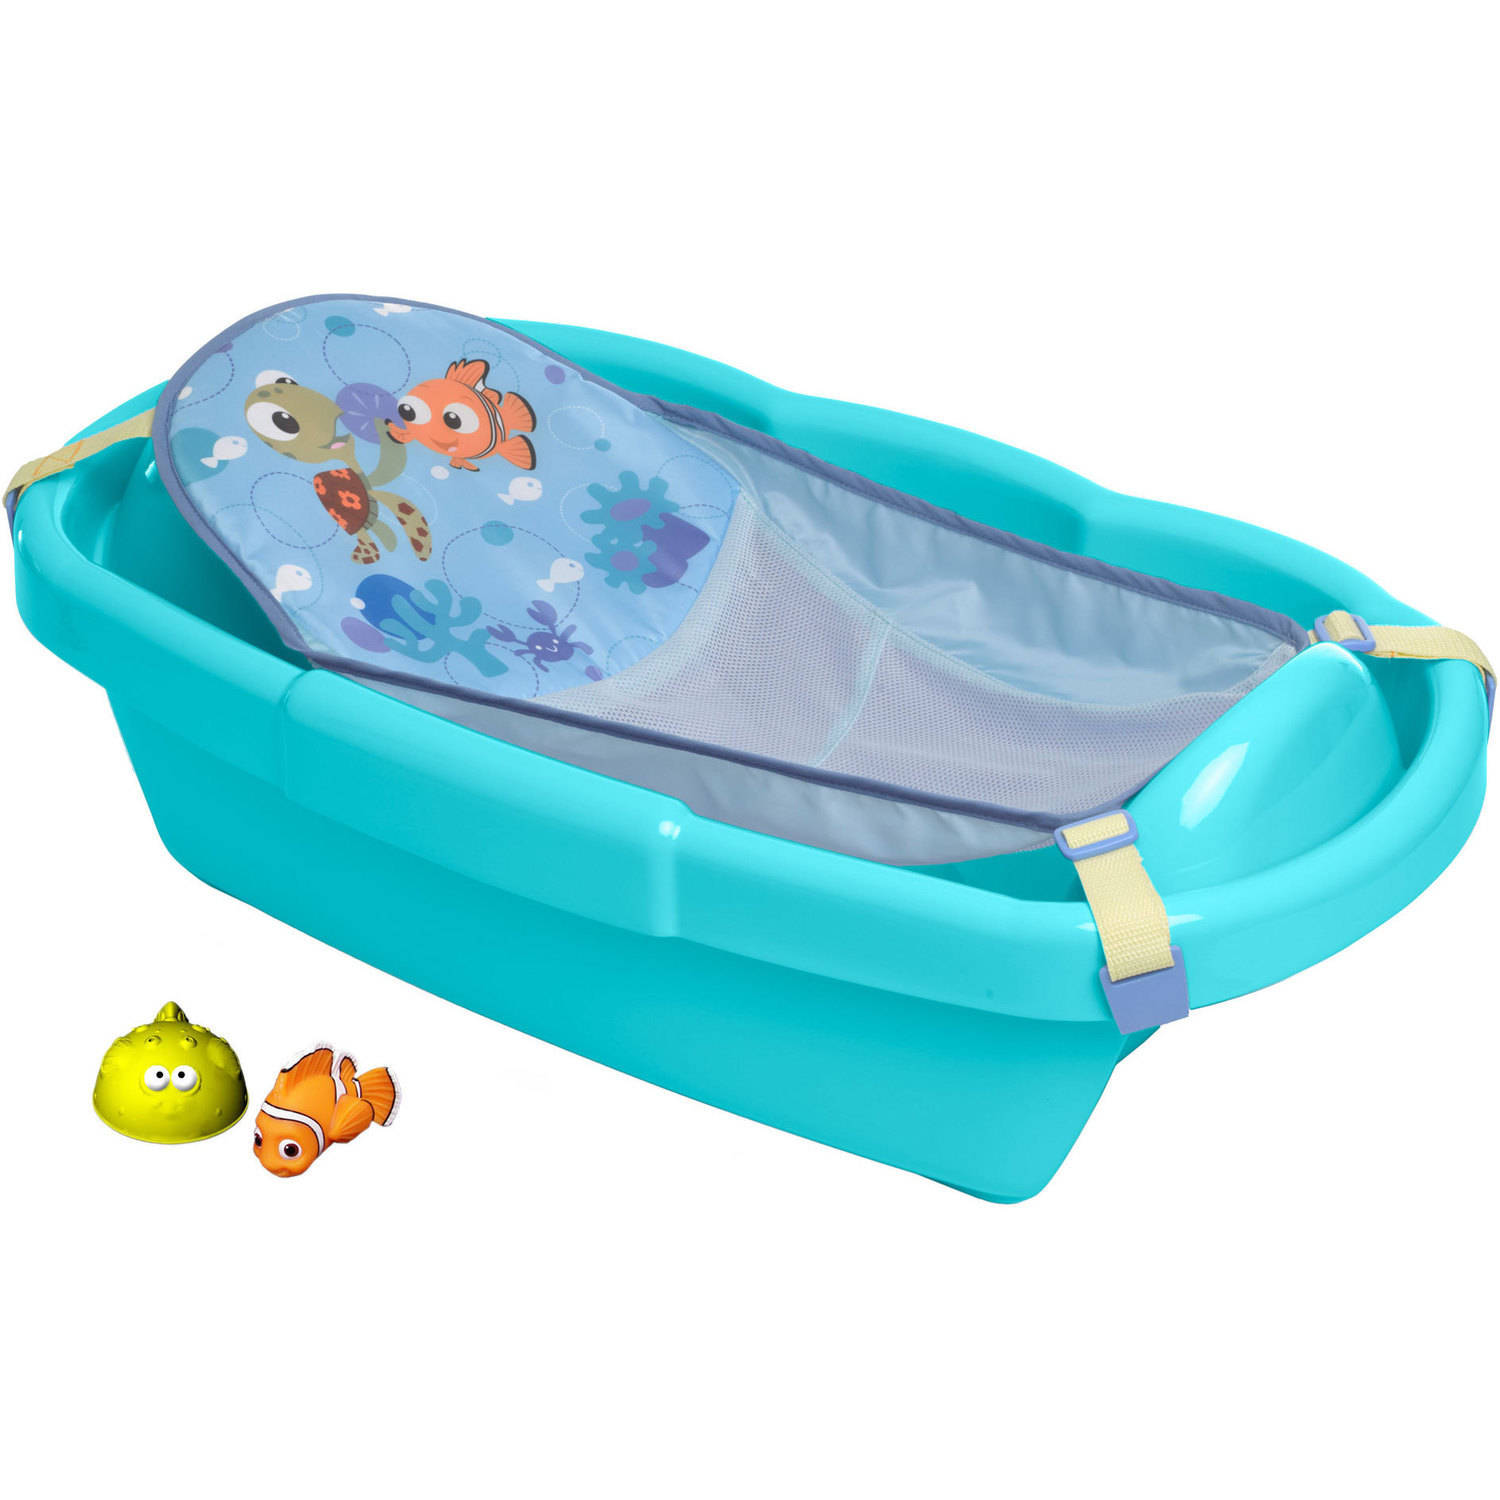 Find great deals on eBay for baby bath. Shop with confidence.